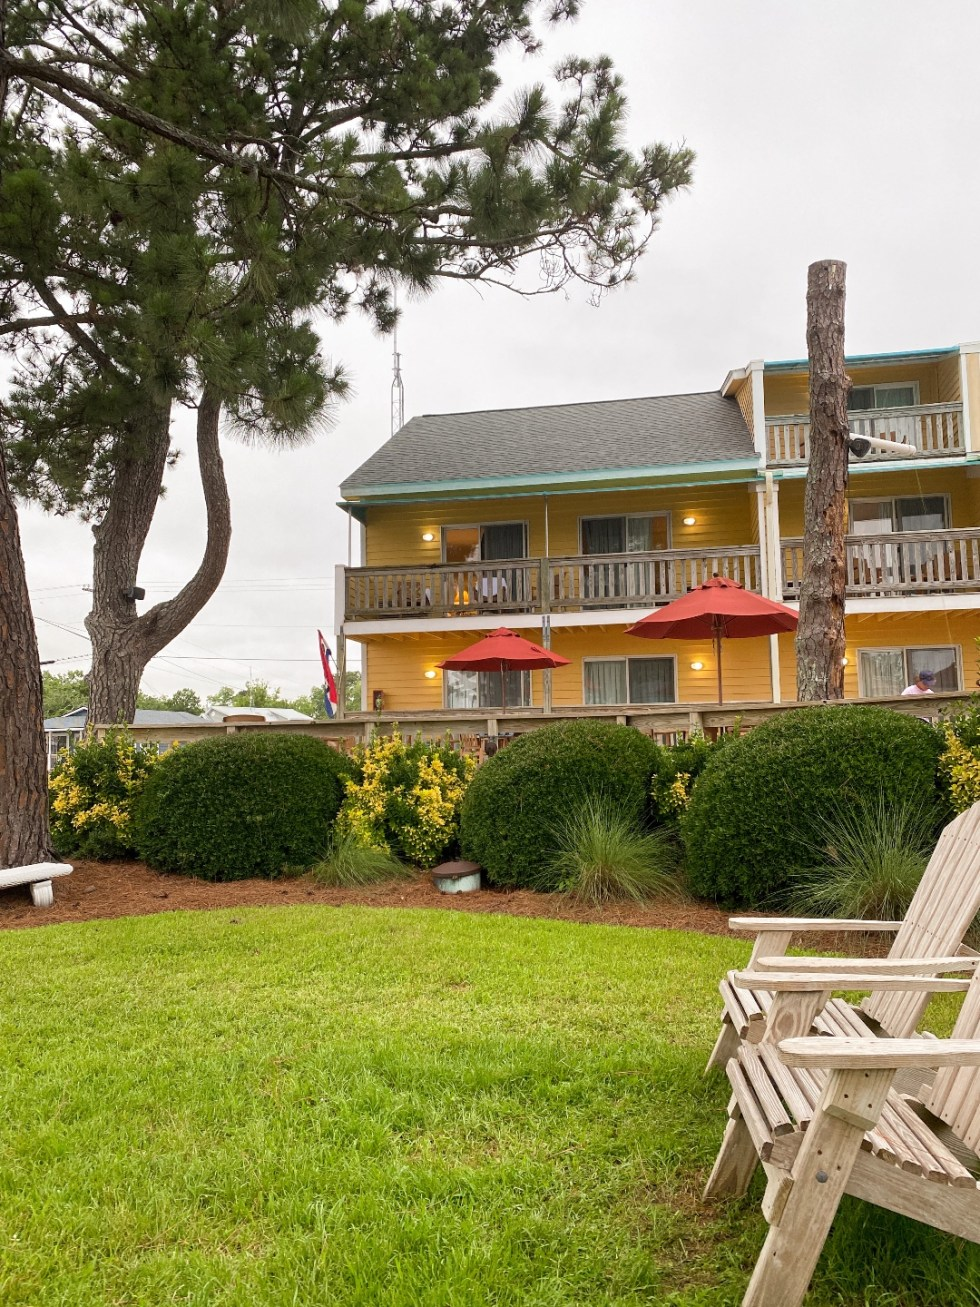 What to Do in Oriental, NC - I'm Fixin' To - @imfixintoblog | Things to do in Oriental NC by popular NC travel blog, I'm Fixin' To: image of Oriental Marina and Inn.